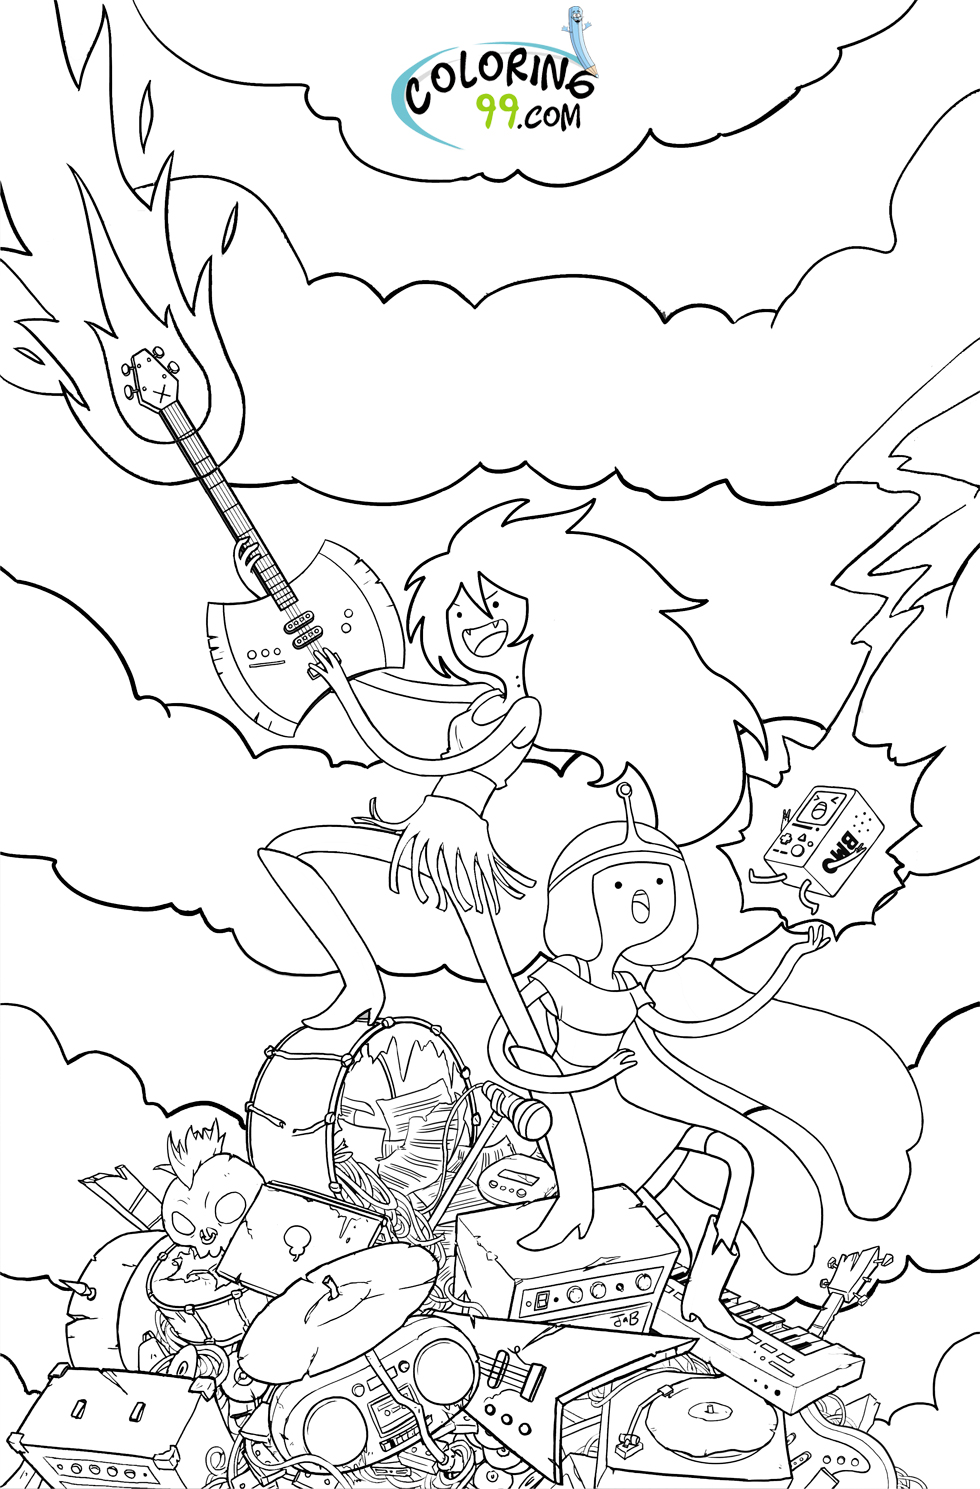 coloring pages of adventure time - photo#12